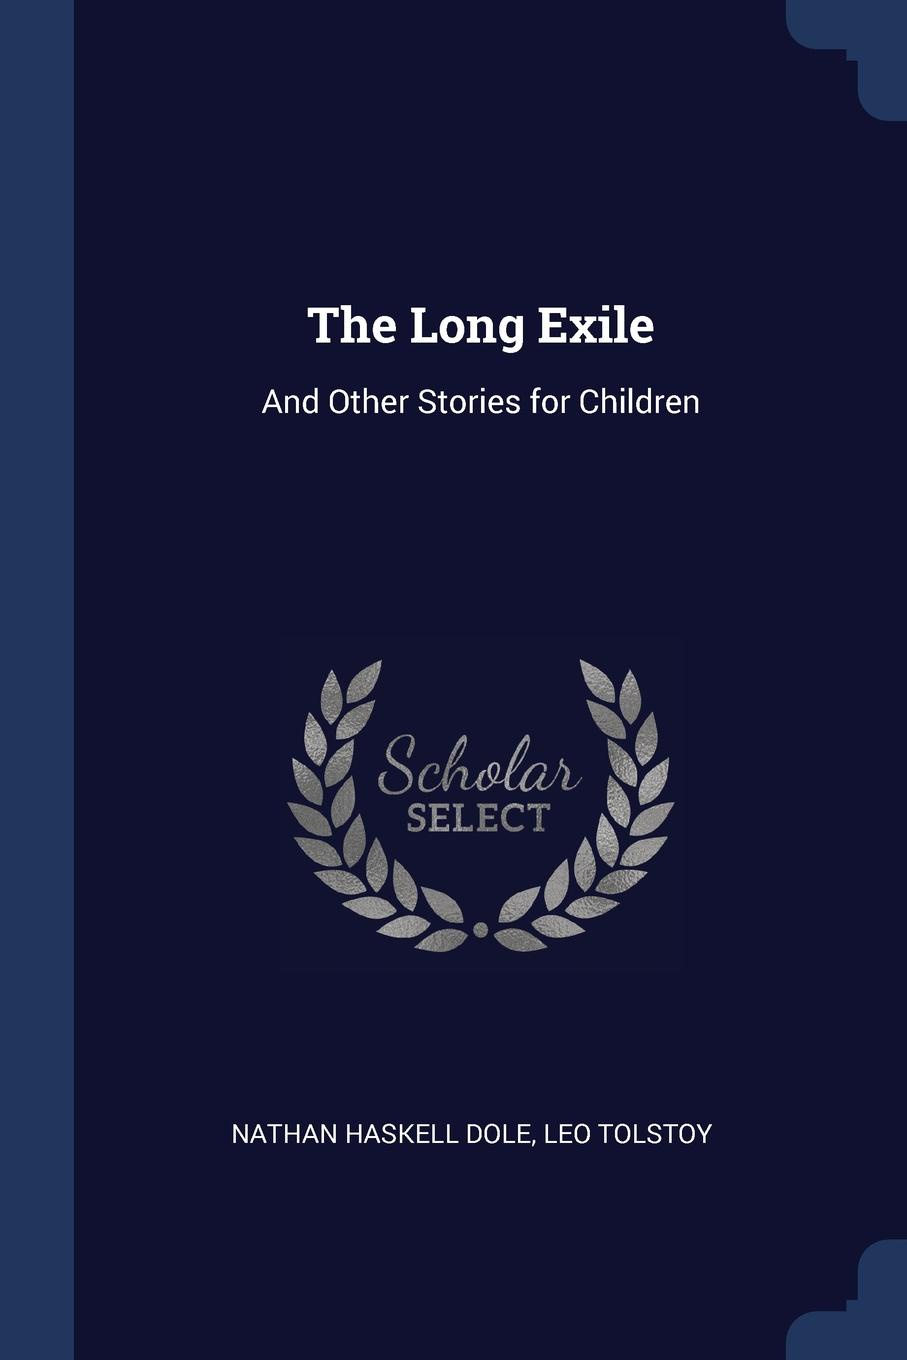 The Long Exile. And Other Stories for Children